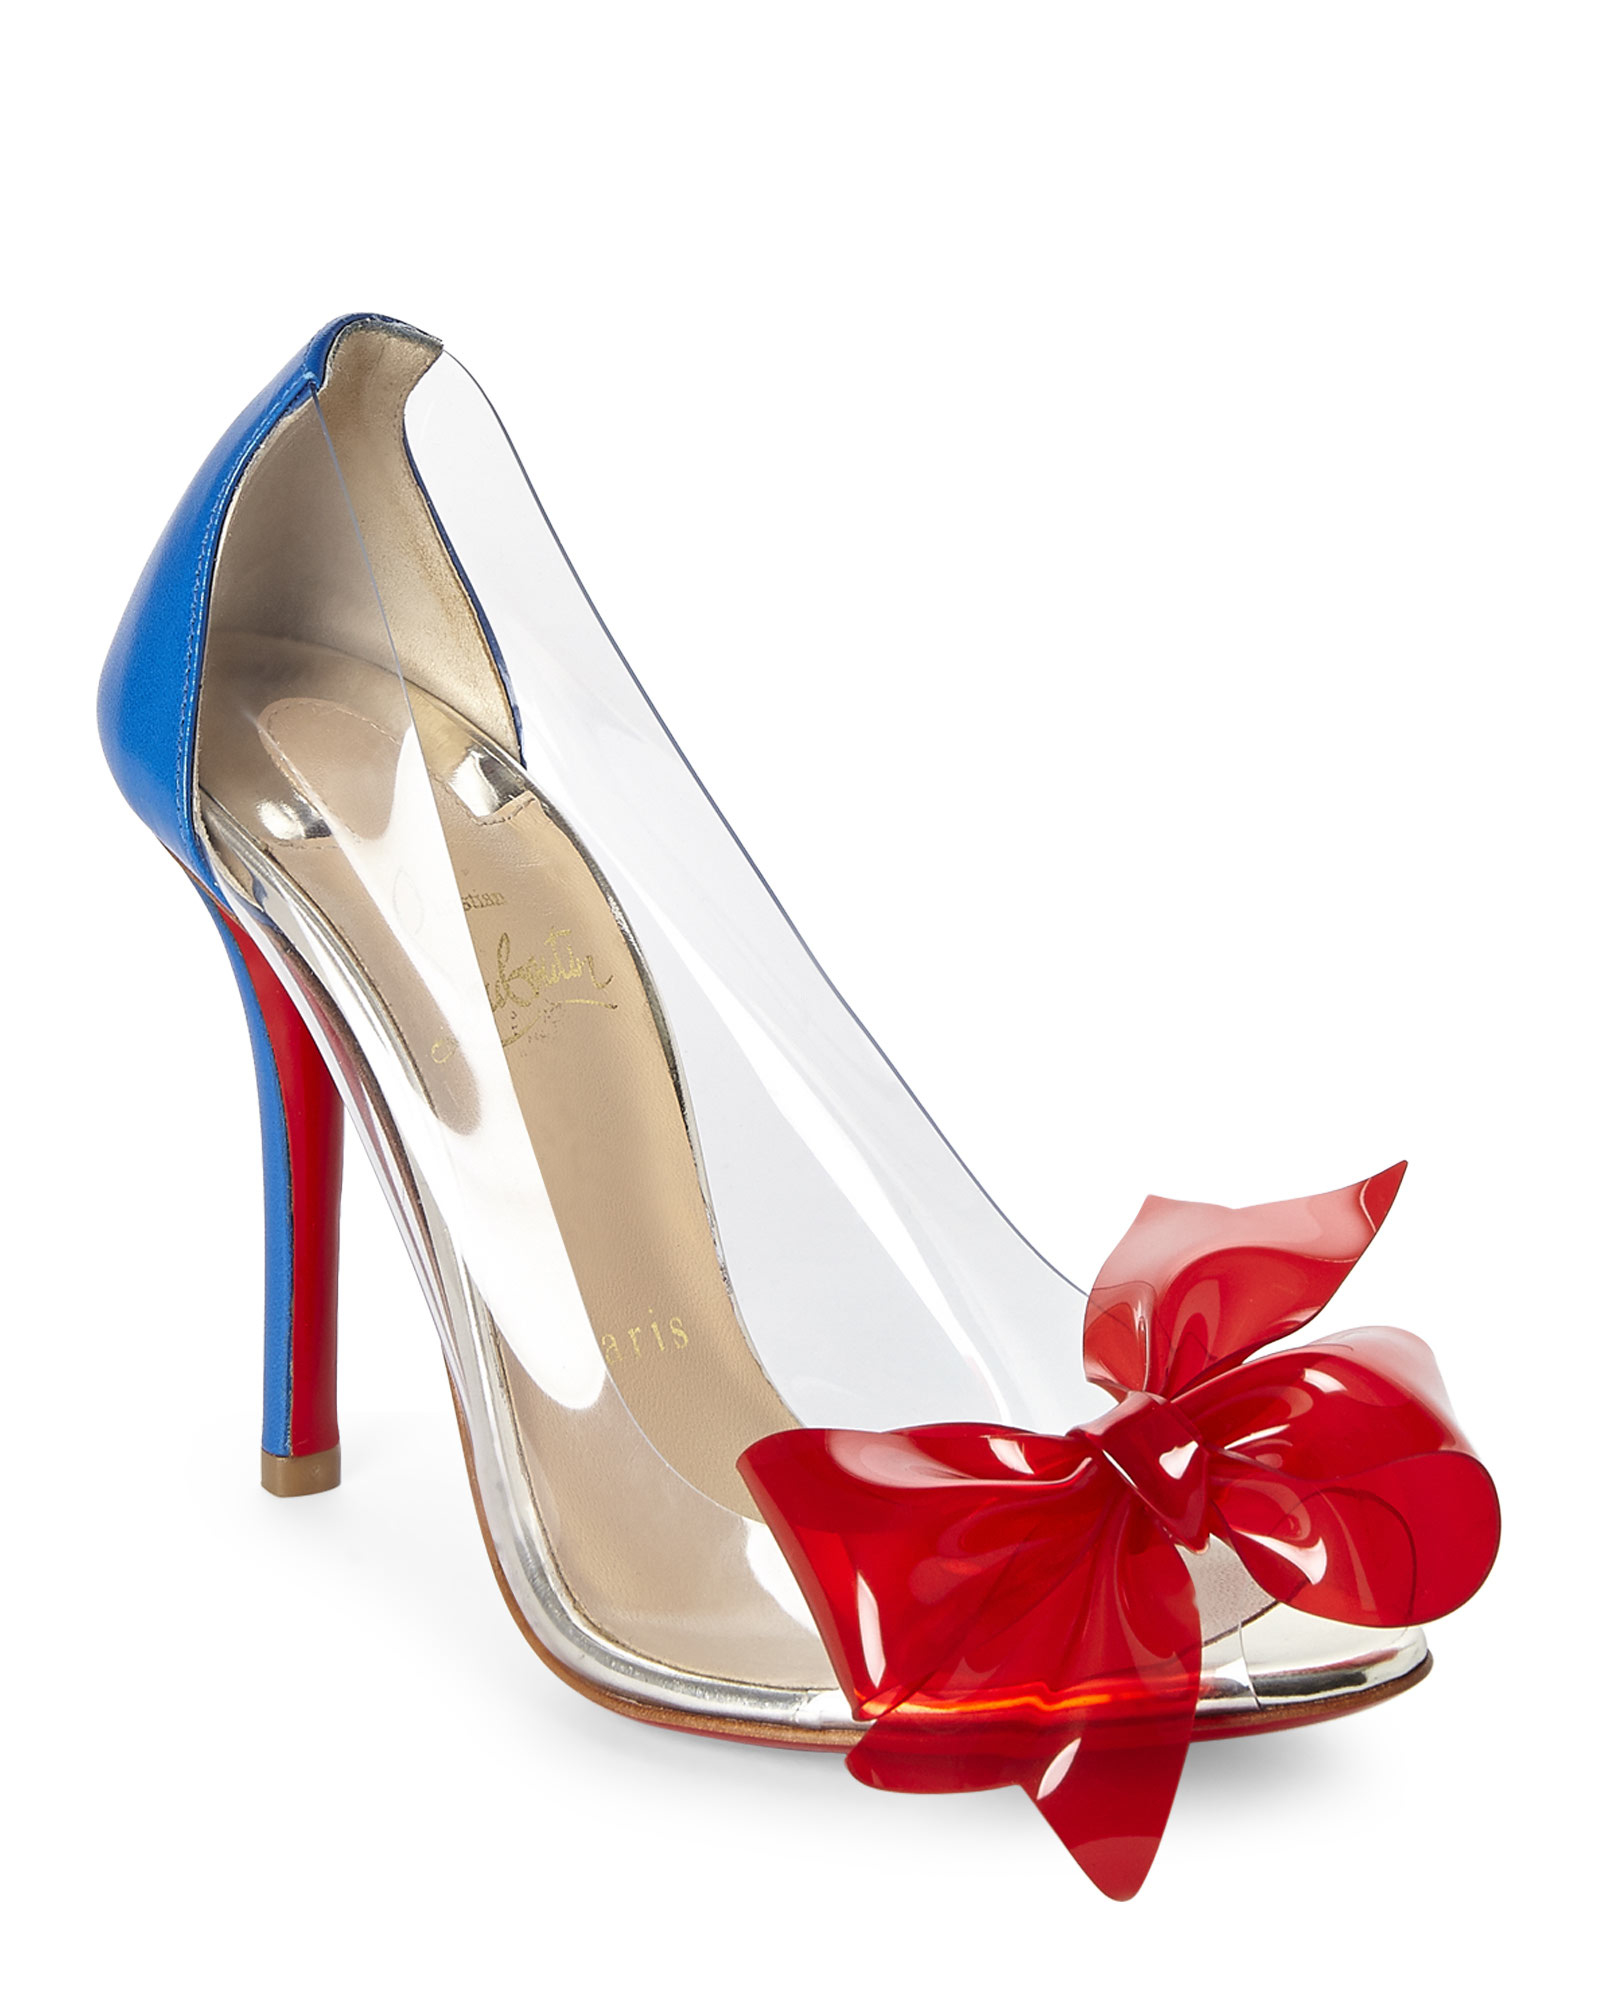 bb3abb56062 Lyst - Christian Louboutin Clear Pvc Bow Pumps in Blue